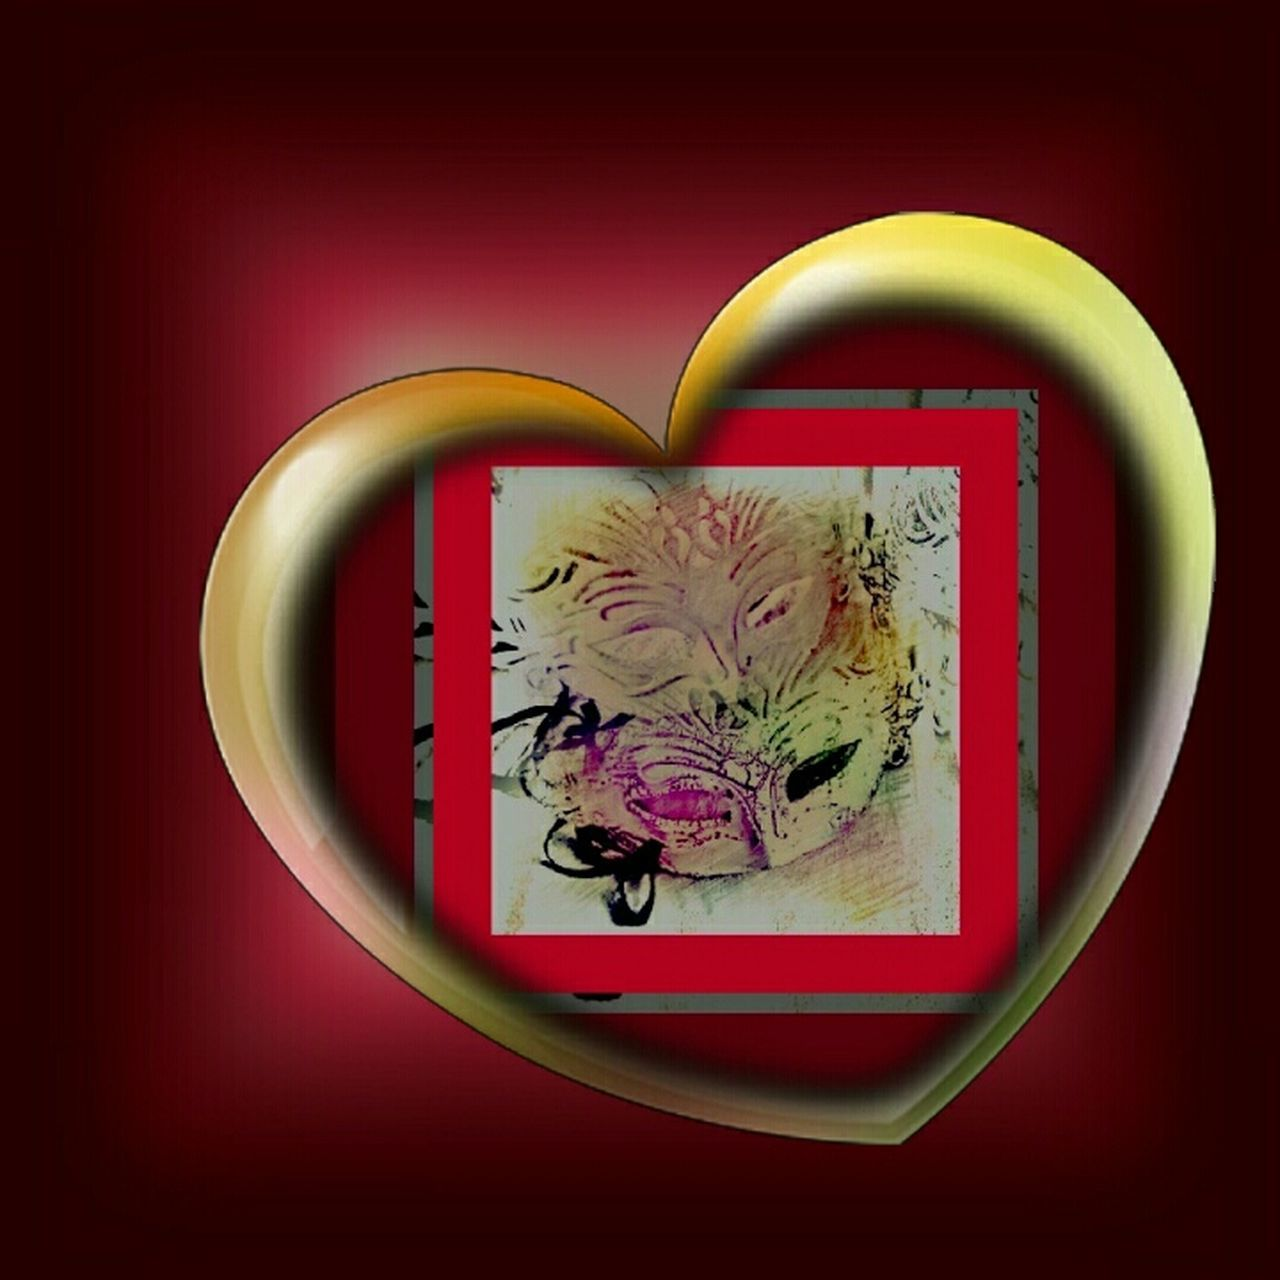 Carnival Crowds And Details Colored Background Red Background Heart Shape Featured Photo Drawing - Art Product Artphotography Art, Drawing, Creativity Creativity Has No Limits Eyeem Market Carnival Crowds And Details